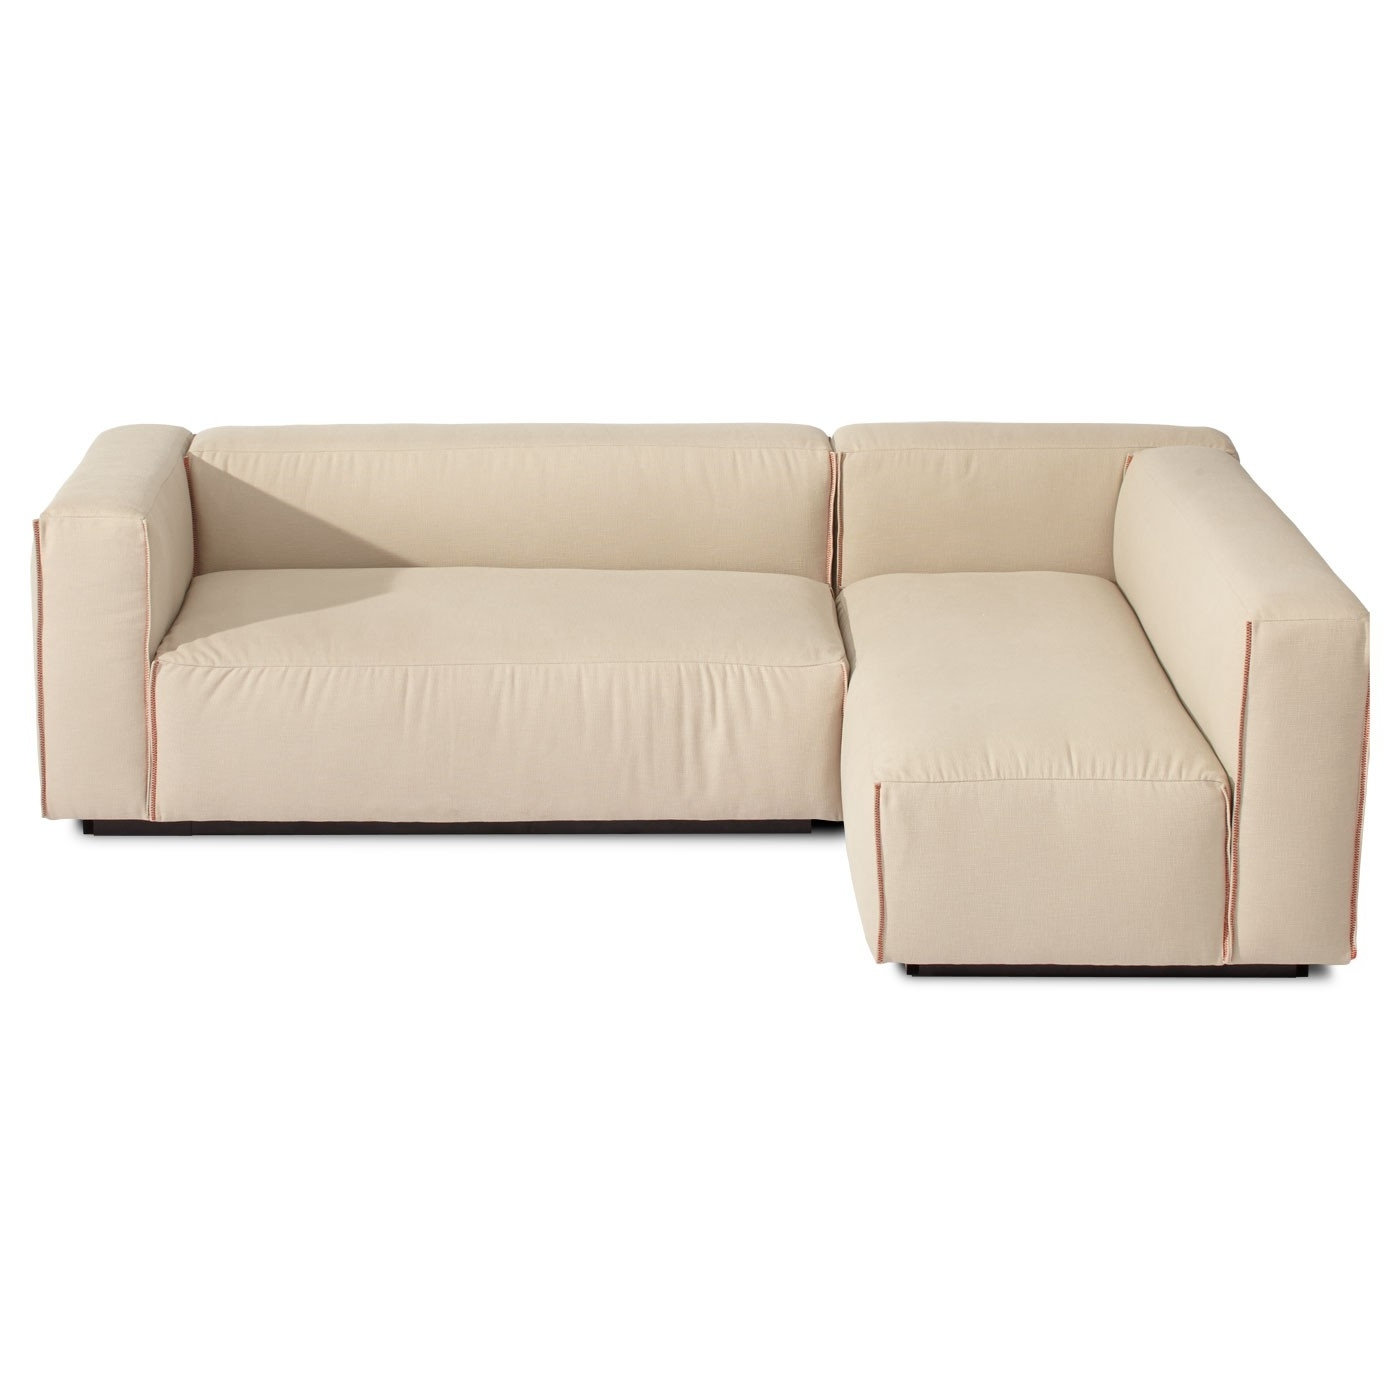 Armless Sectional Sofas For 2018 Furniture : Sofa Armless Leather Furniture Comfortable For (View 3 of 20)